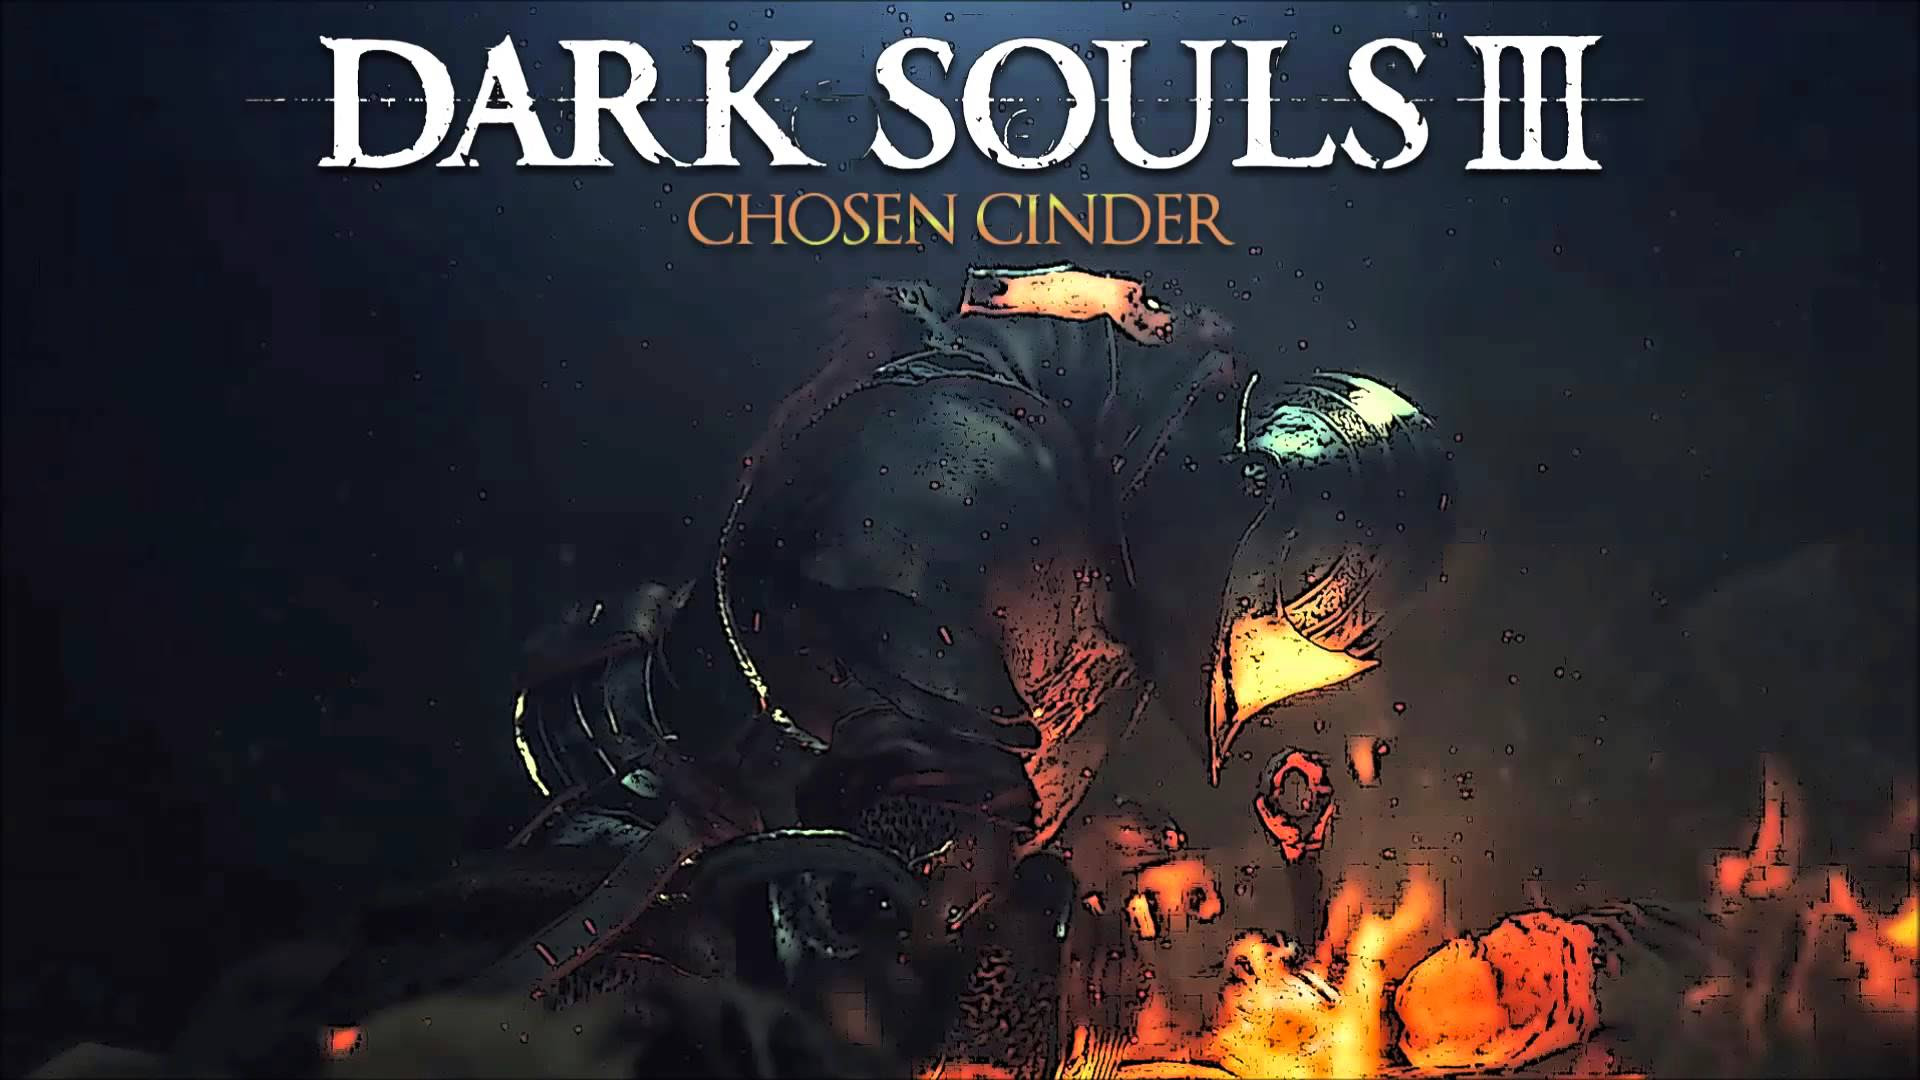 20 Dark Souls 3 Wallpapers High Quality Download